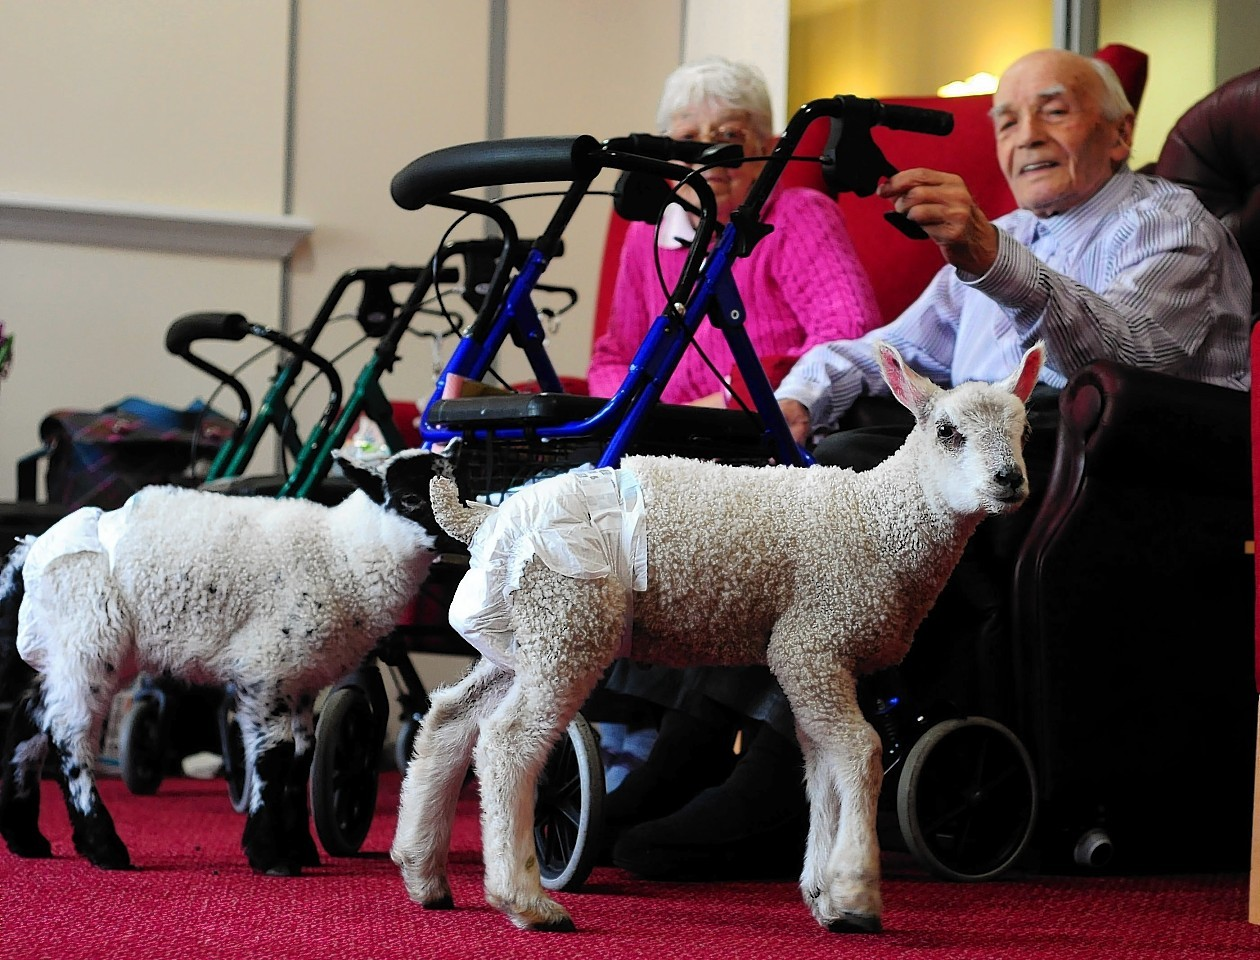 Newborn lambs Poppy and Lamby moved into the care home